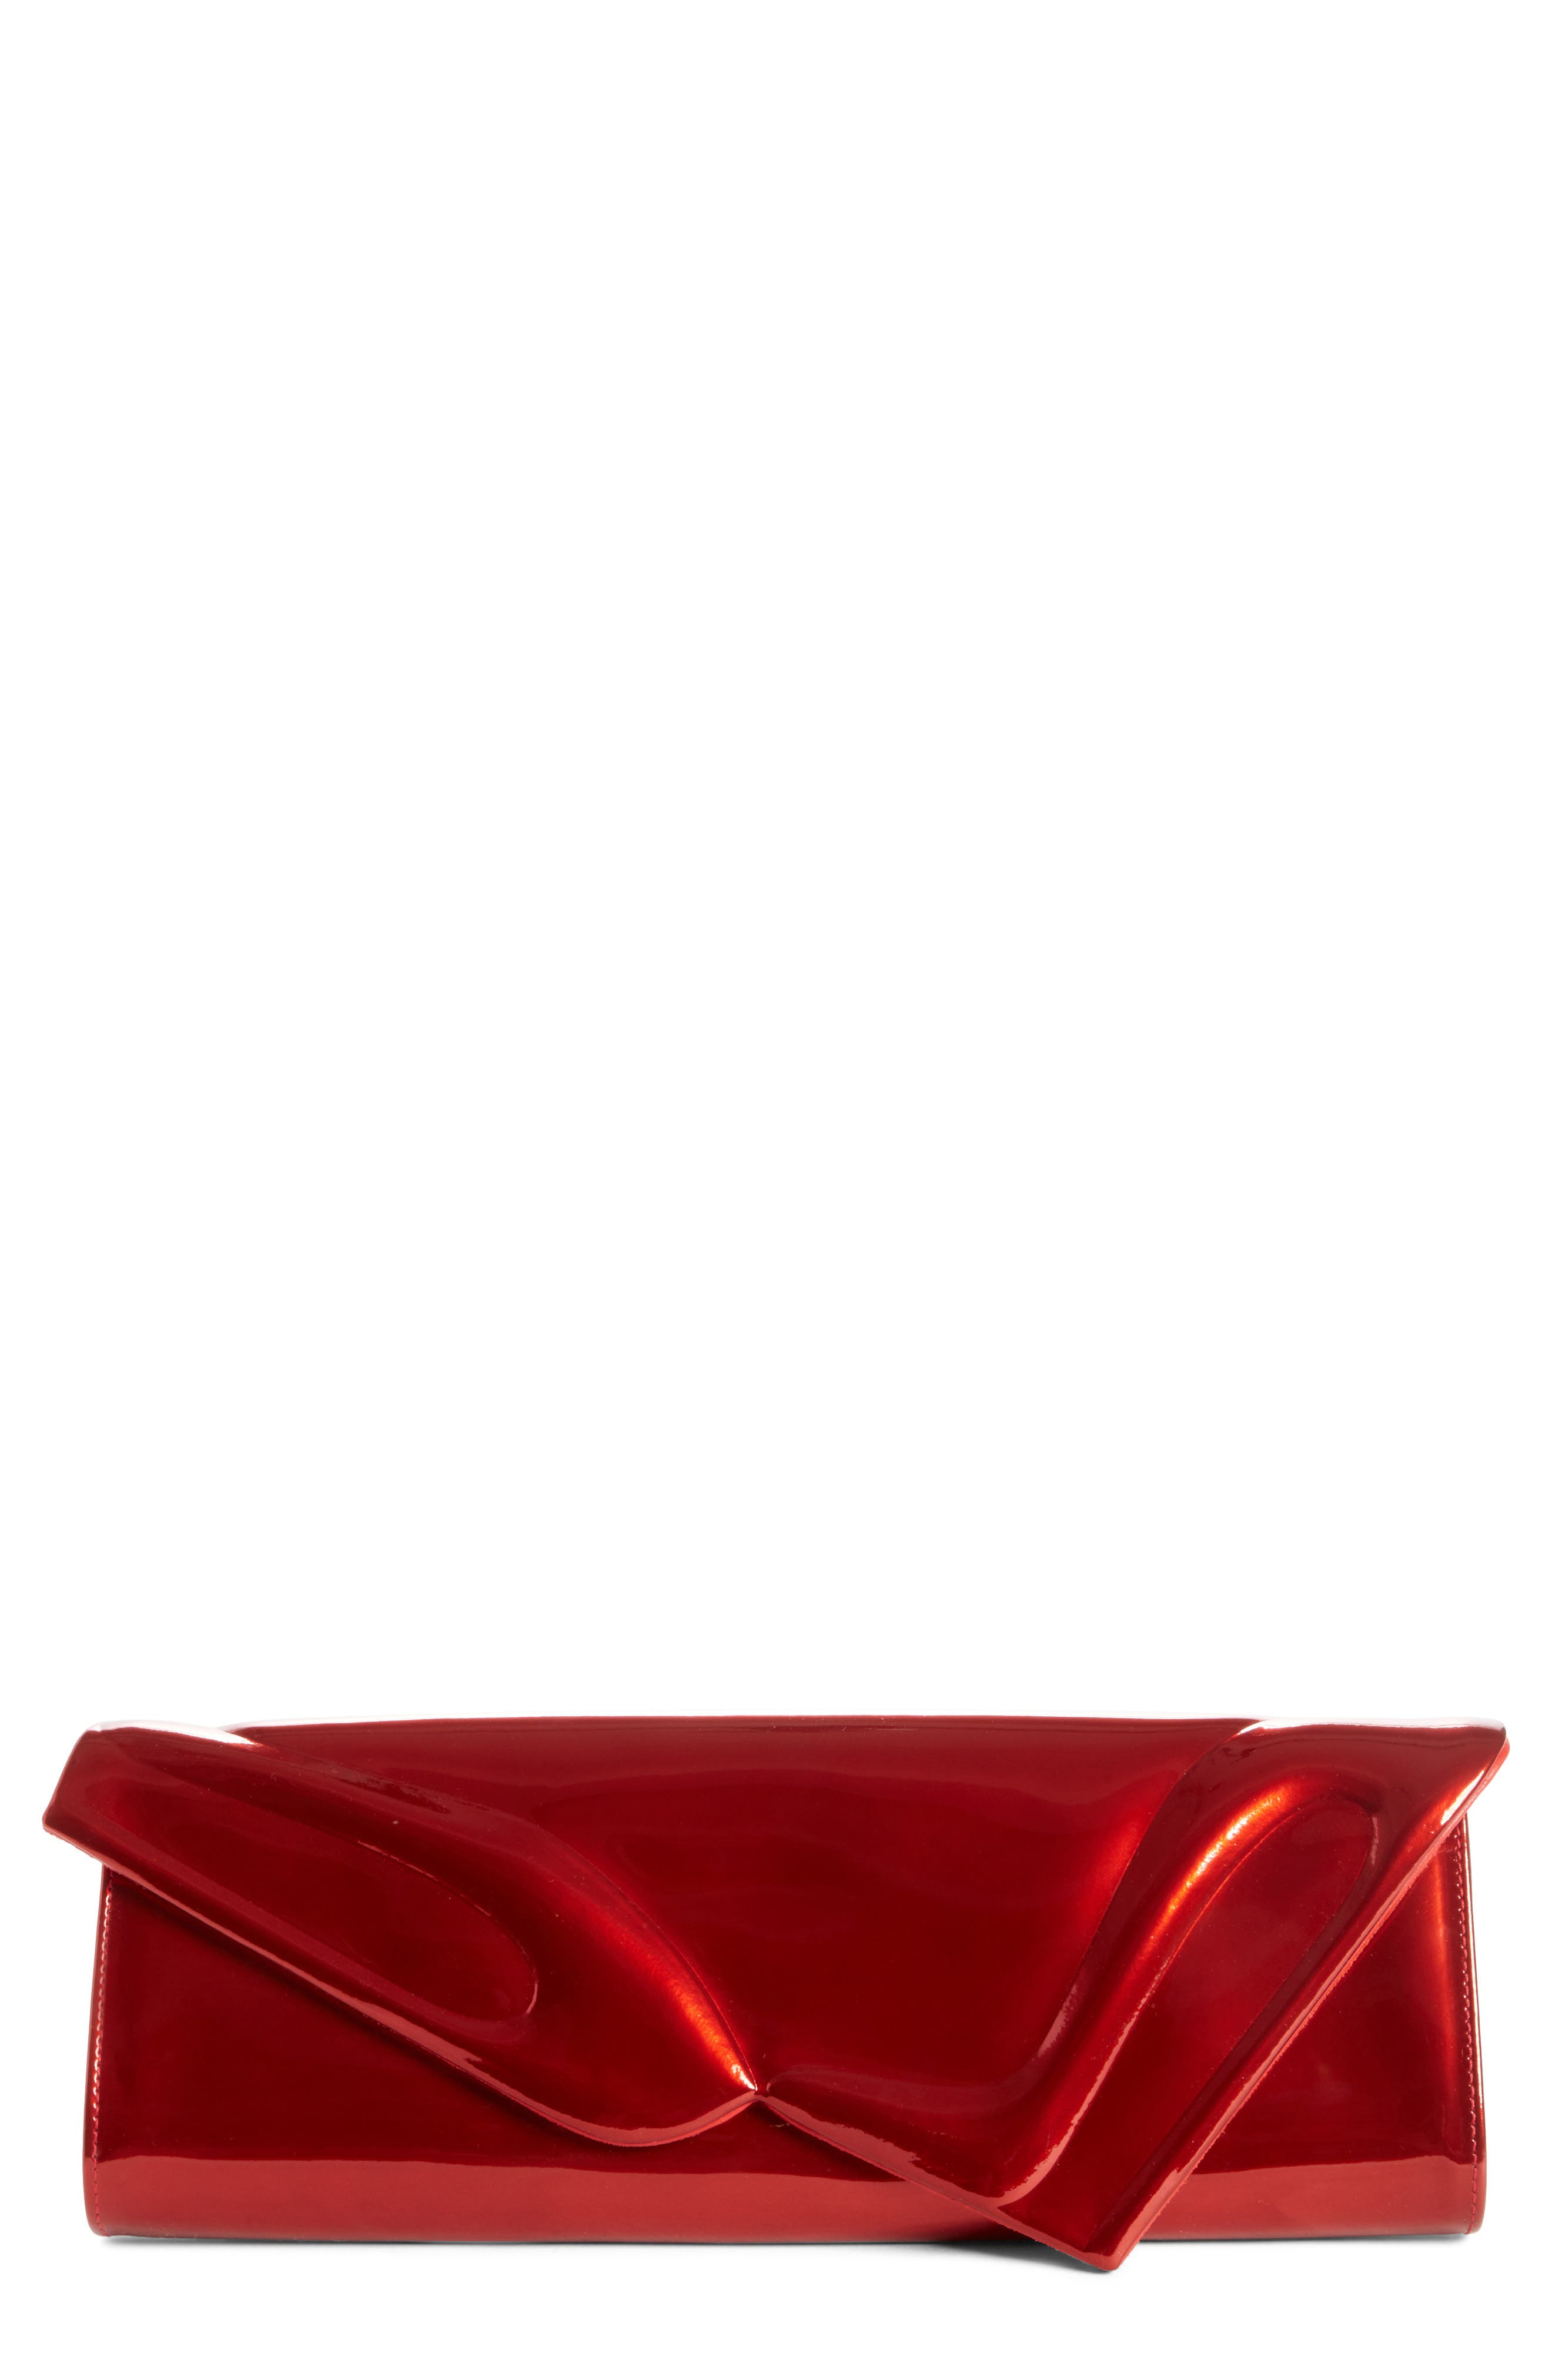 Christian Louboutin 'So Kate' Patent Leather Clutch (Nordstrom Exclusive)